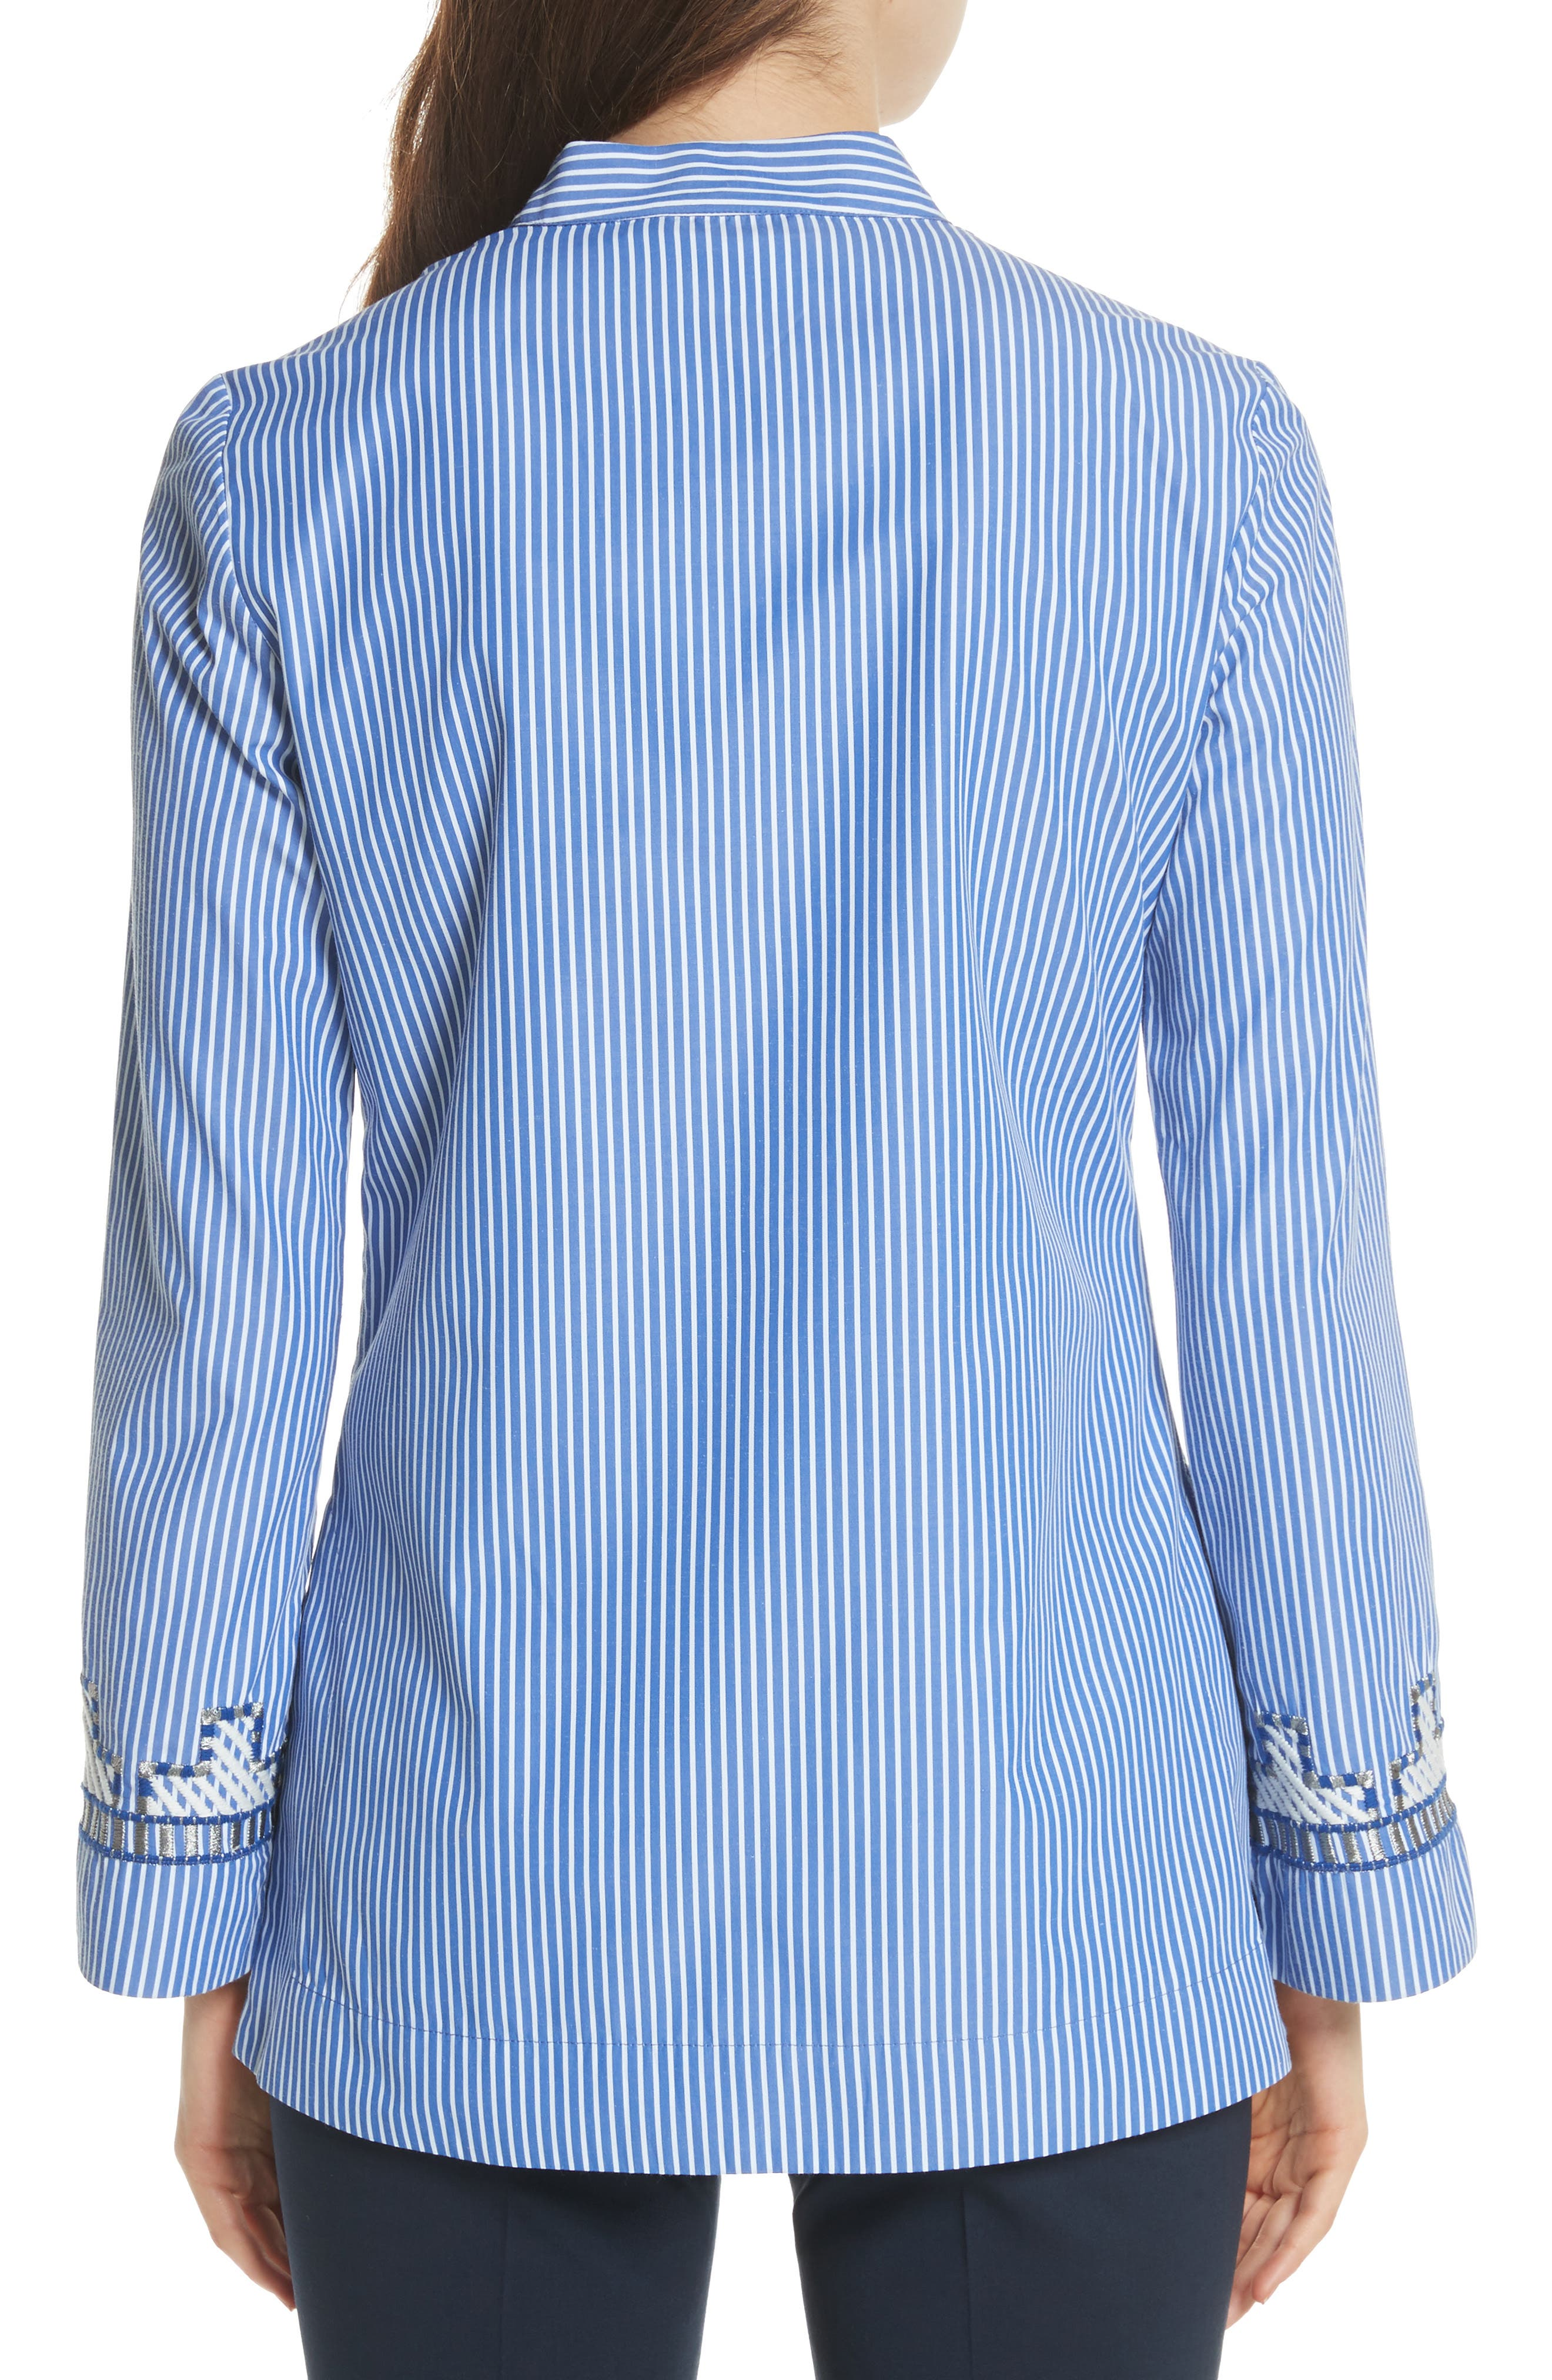 Tory Embroidered Stripe Tunic,                             Alternate thumbnail 2, color,                             Blue/ White